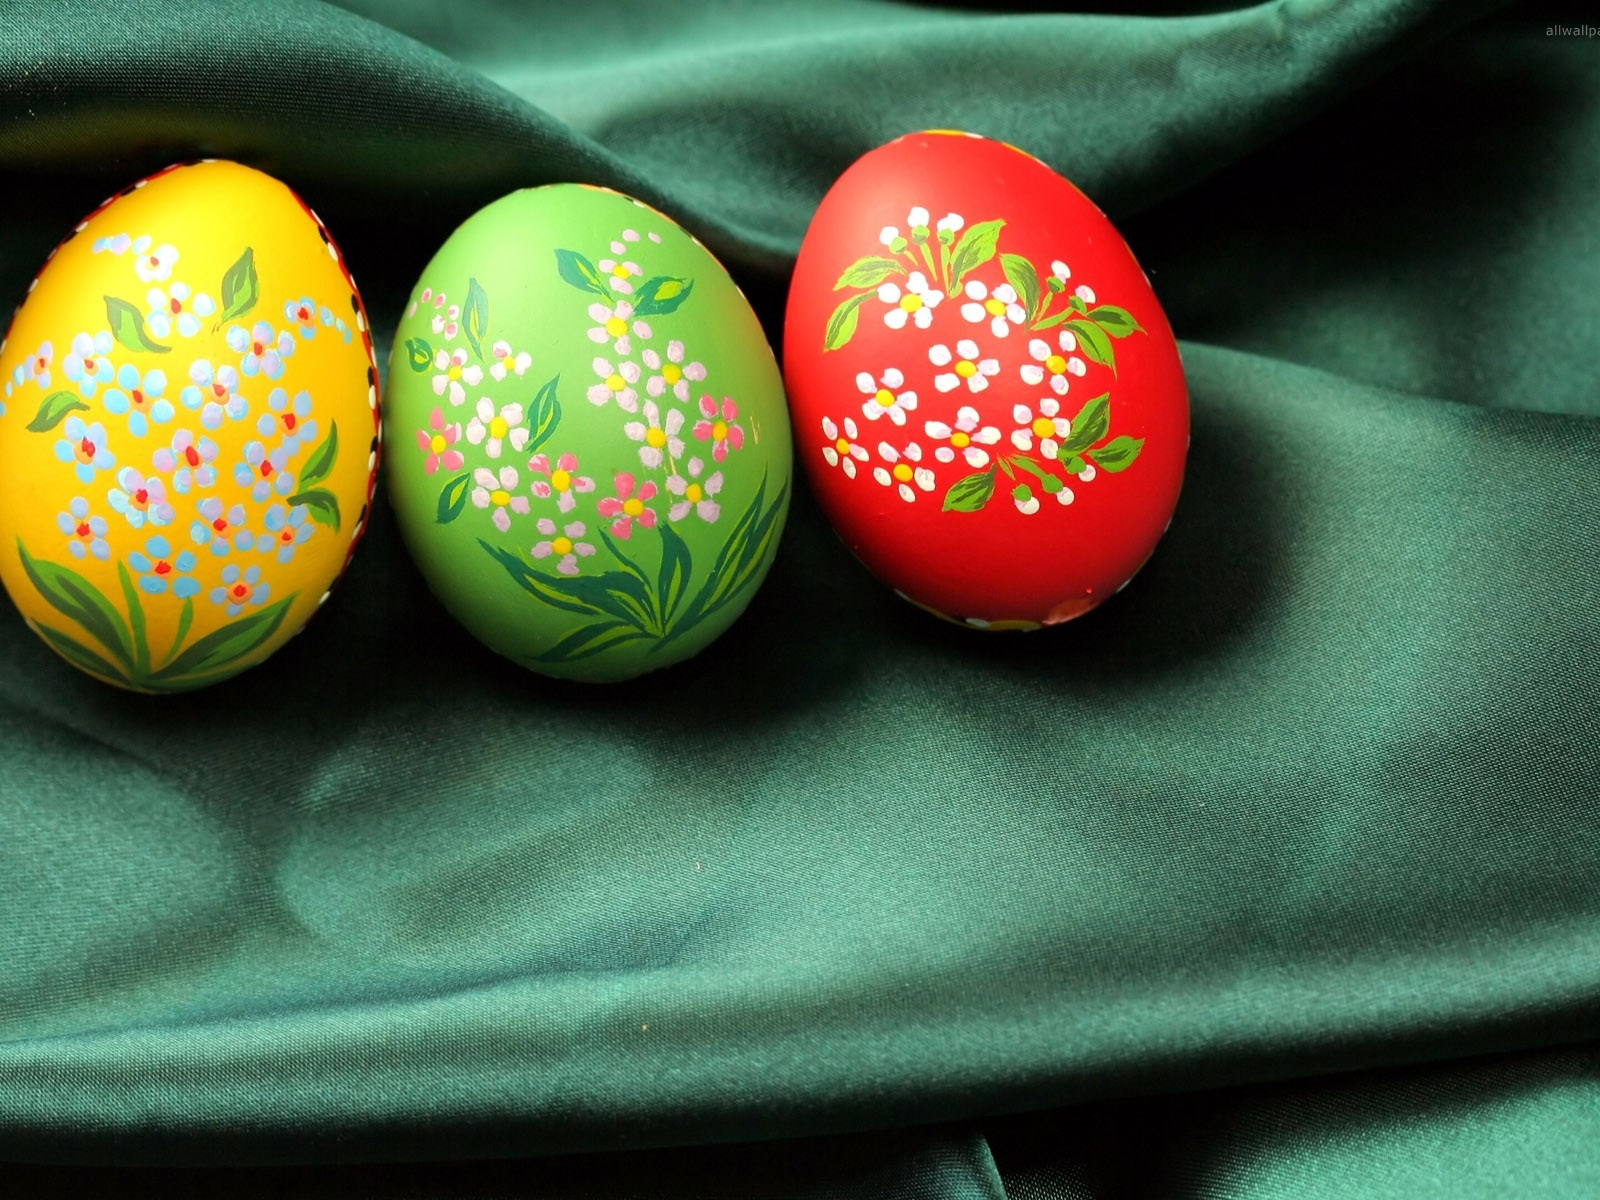 Easter egg artistic wallpaper - 1600x1200